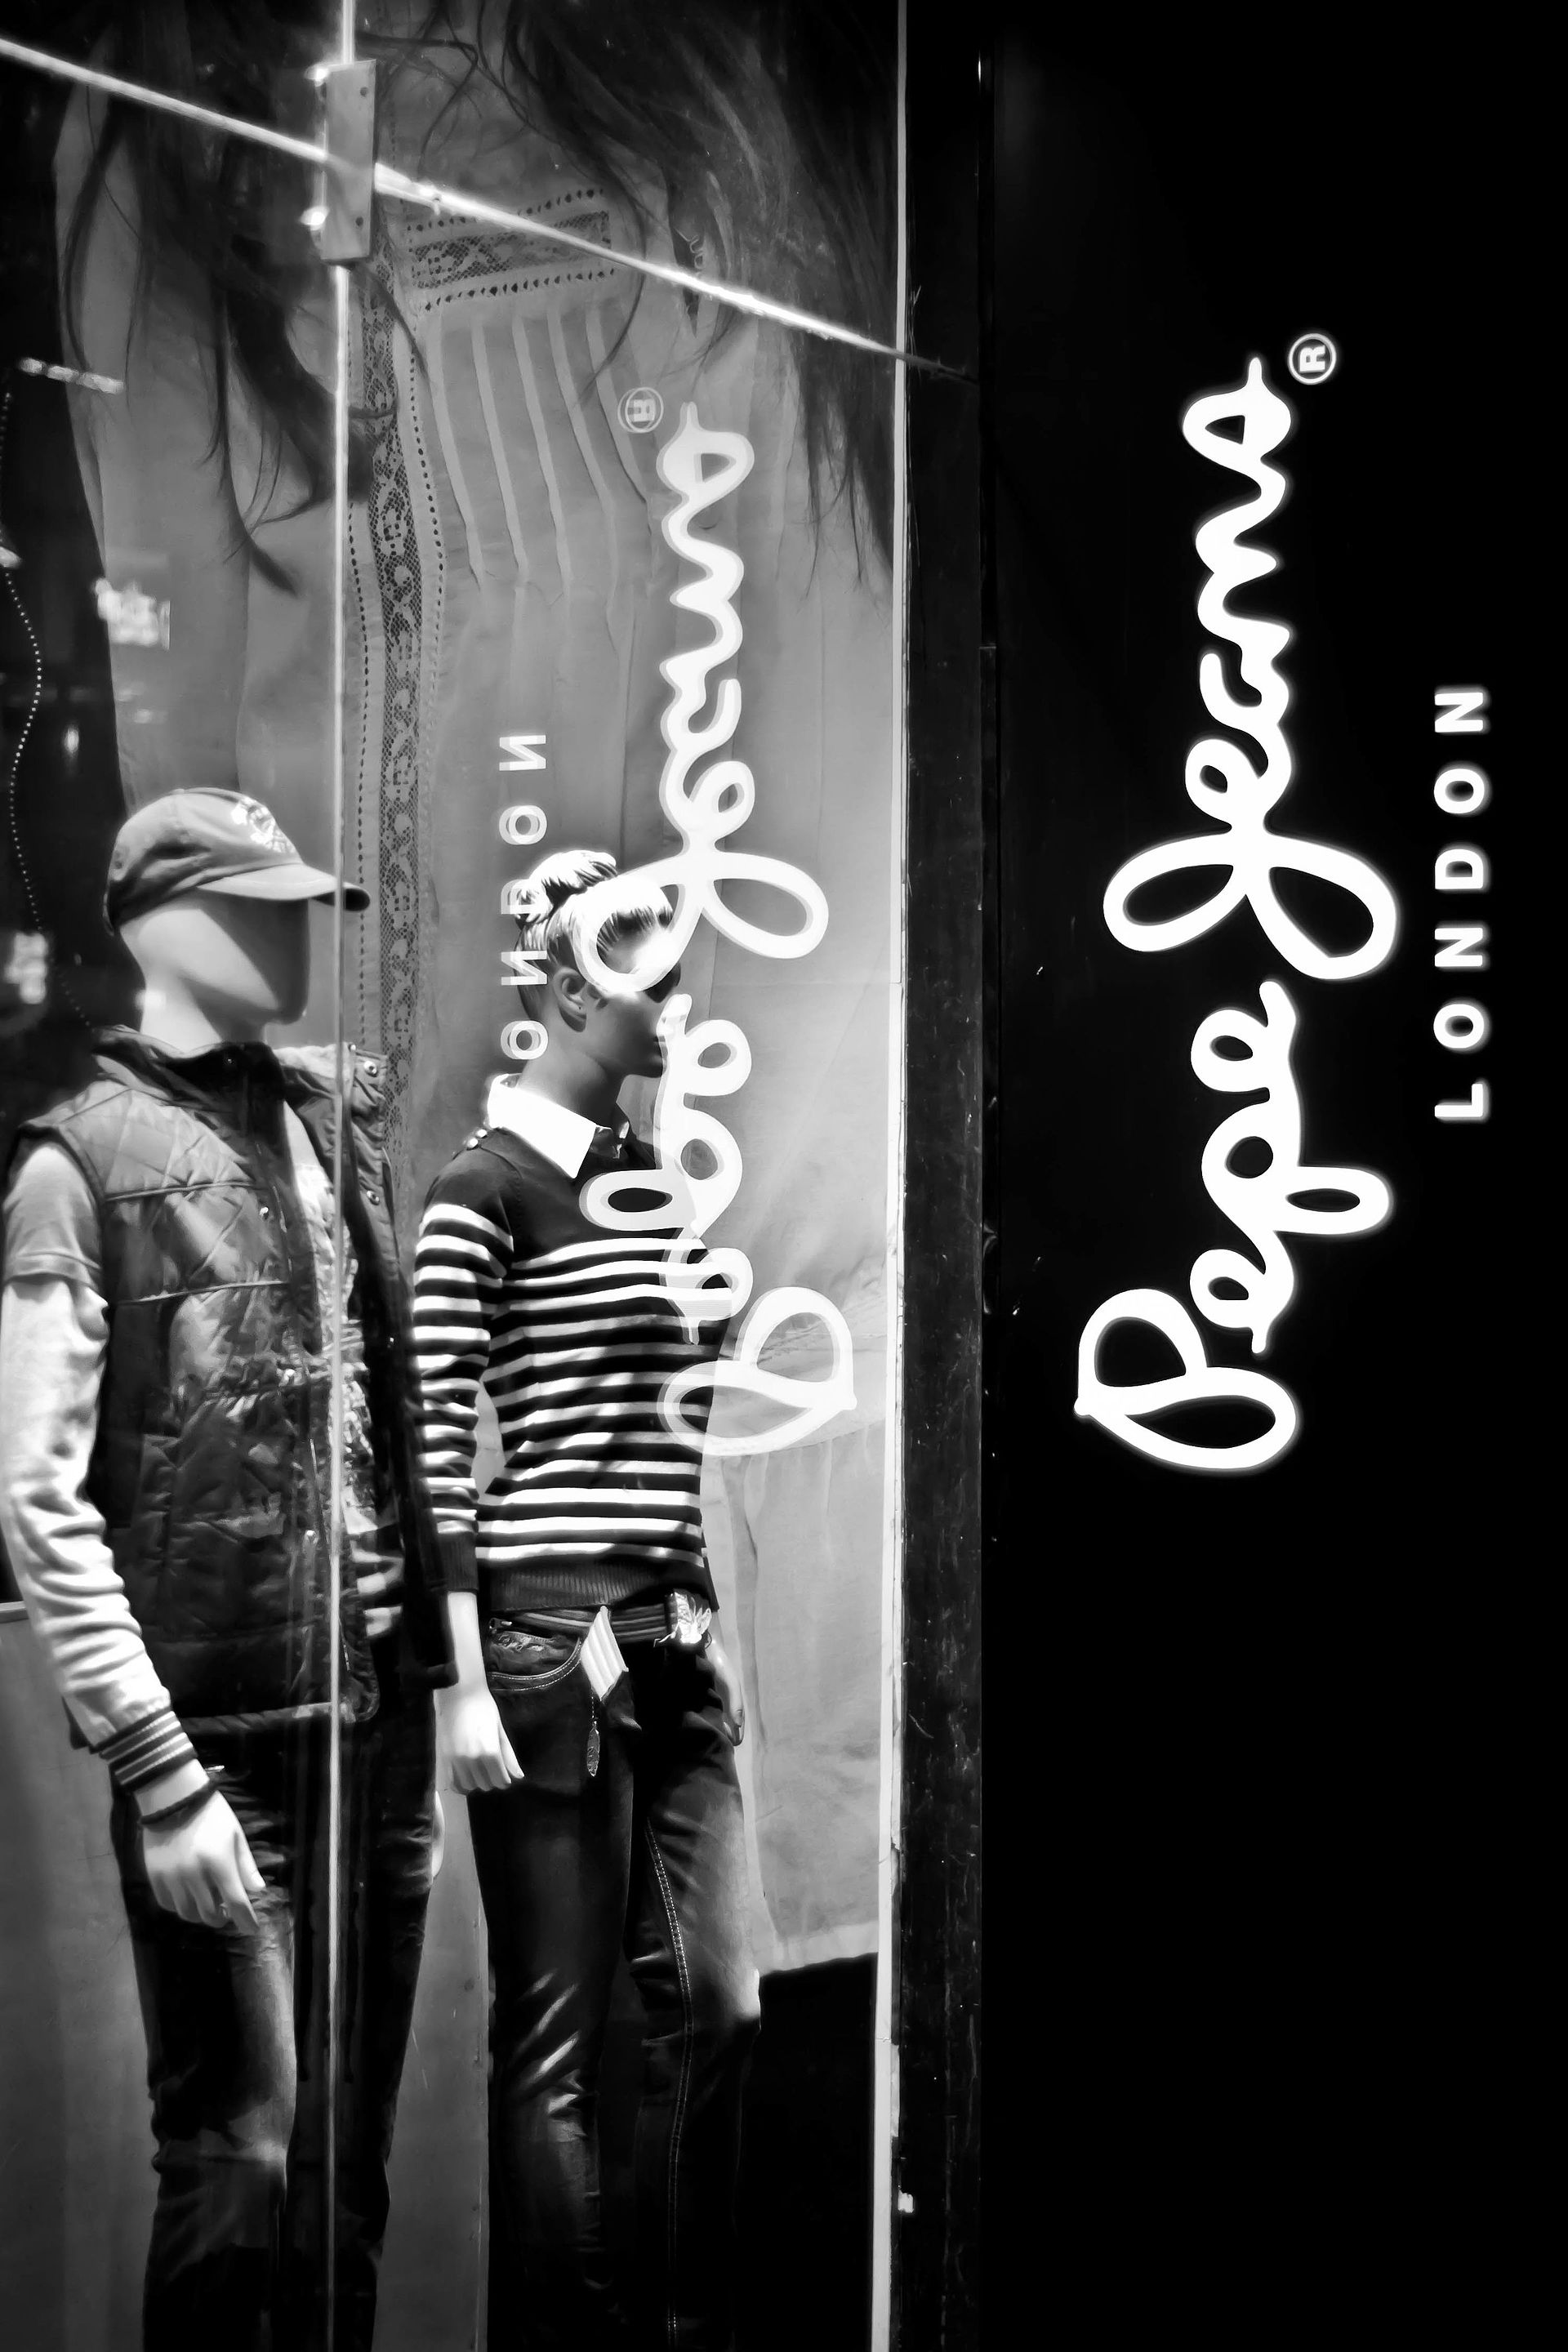 Pepe jeans wikipedia - Pepe jeans showroom ...